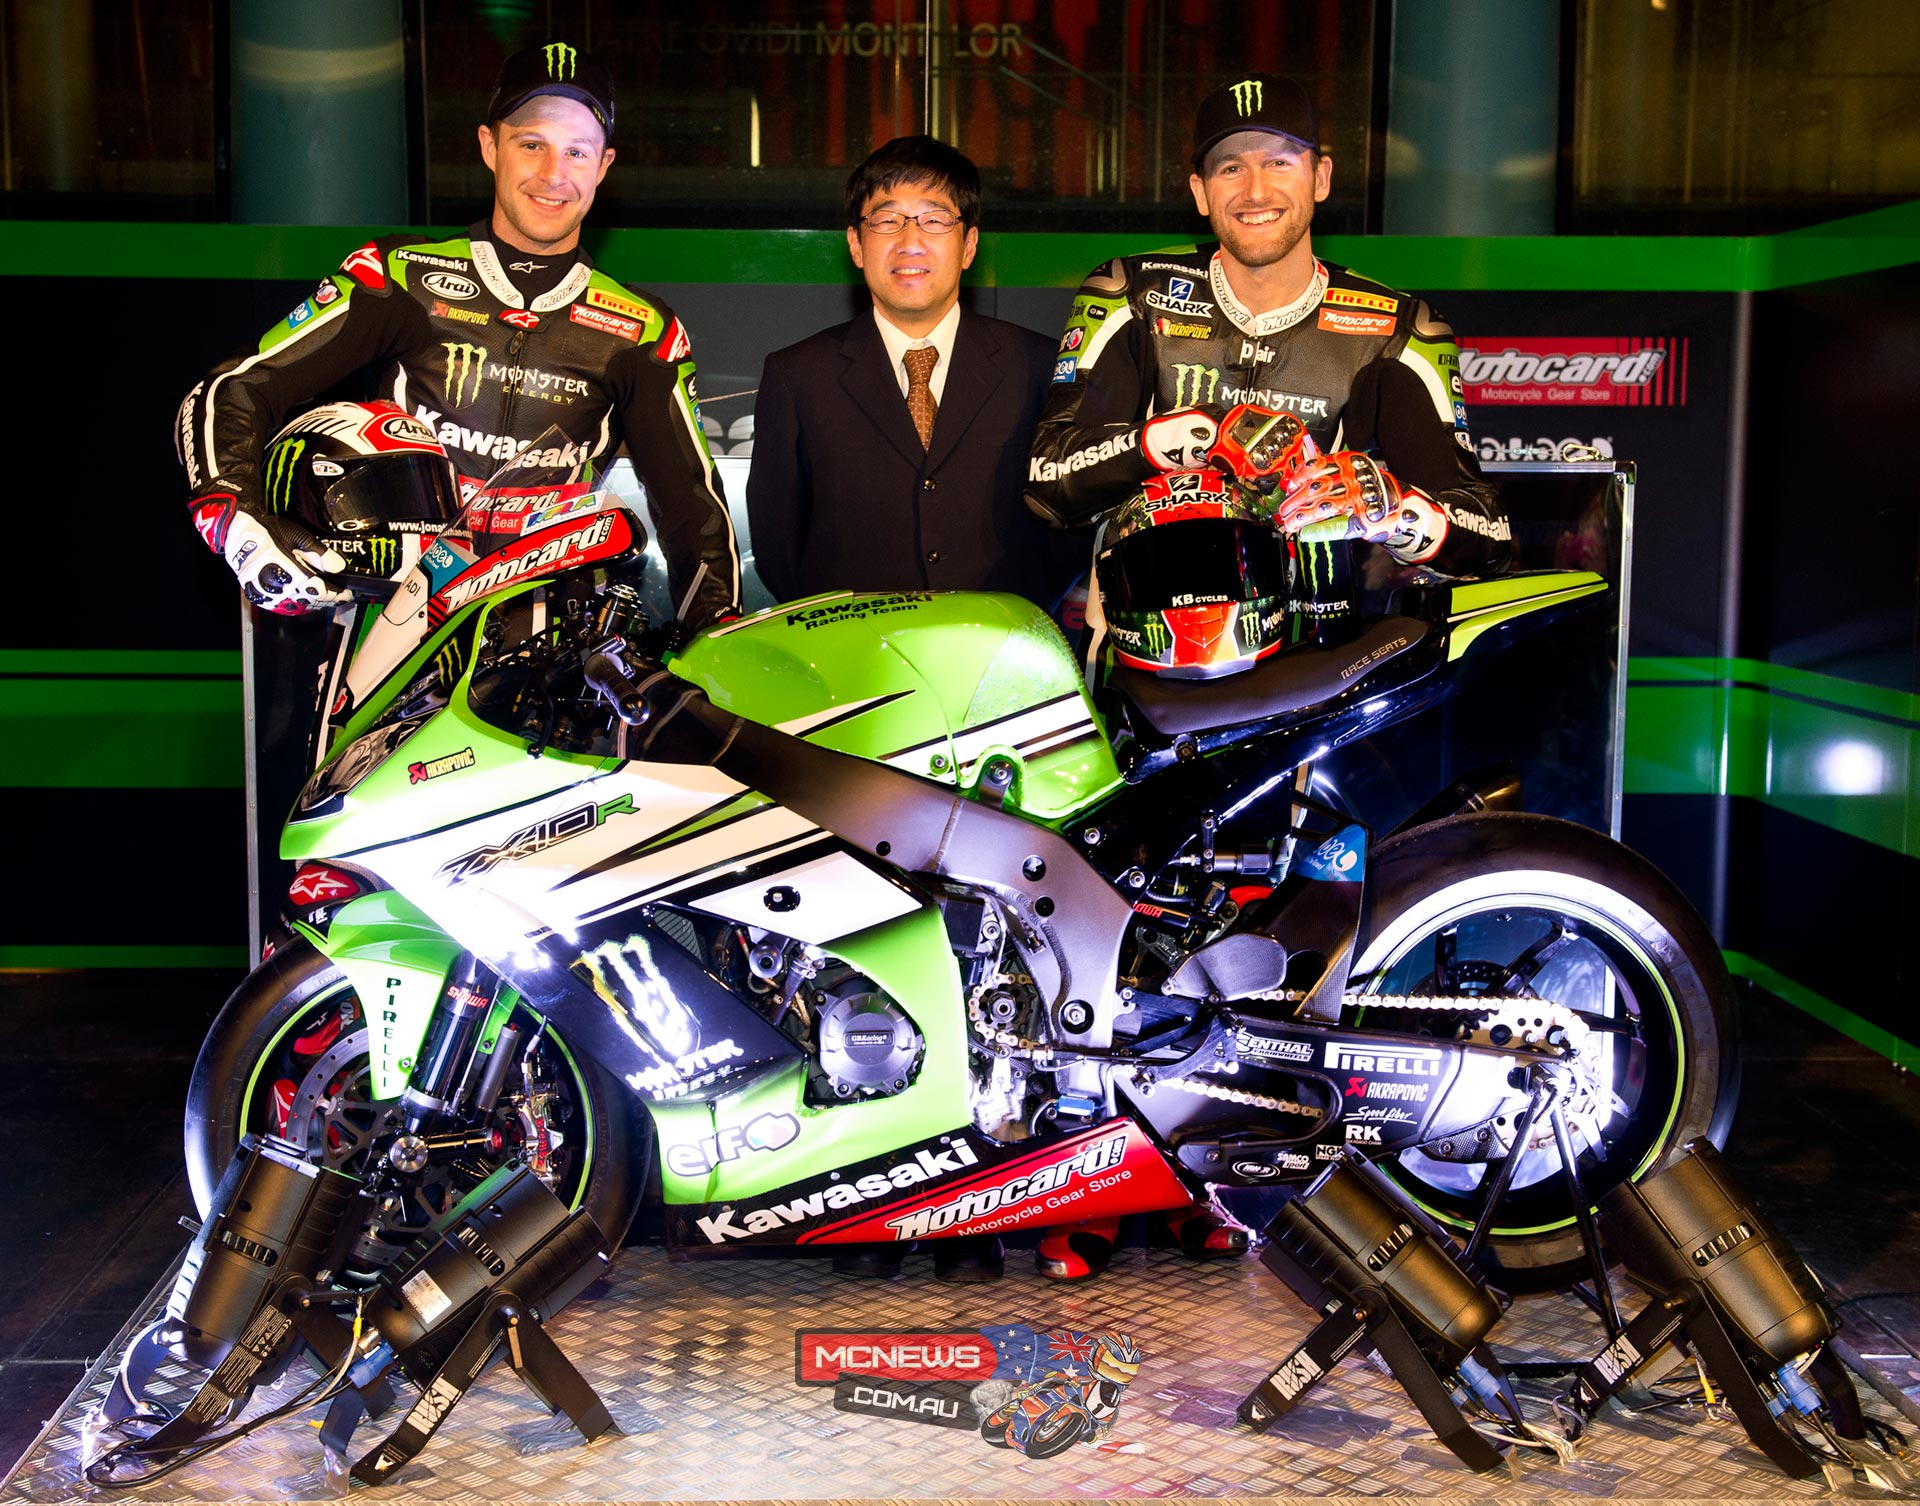 Jonathan Rea and Tom Sykes